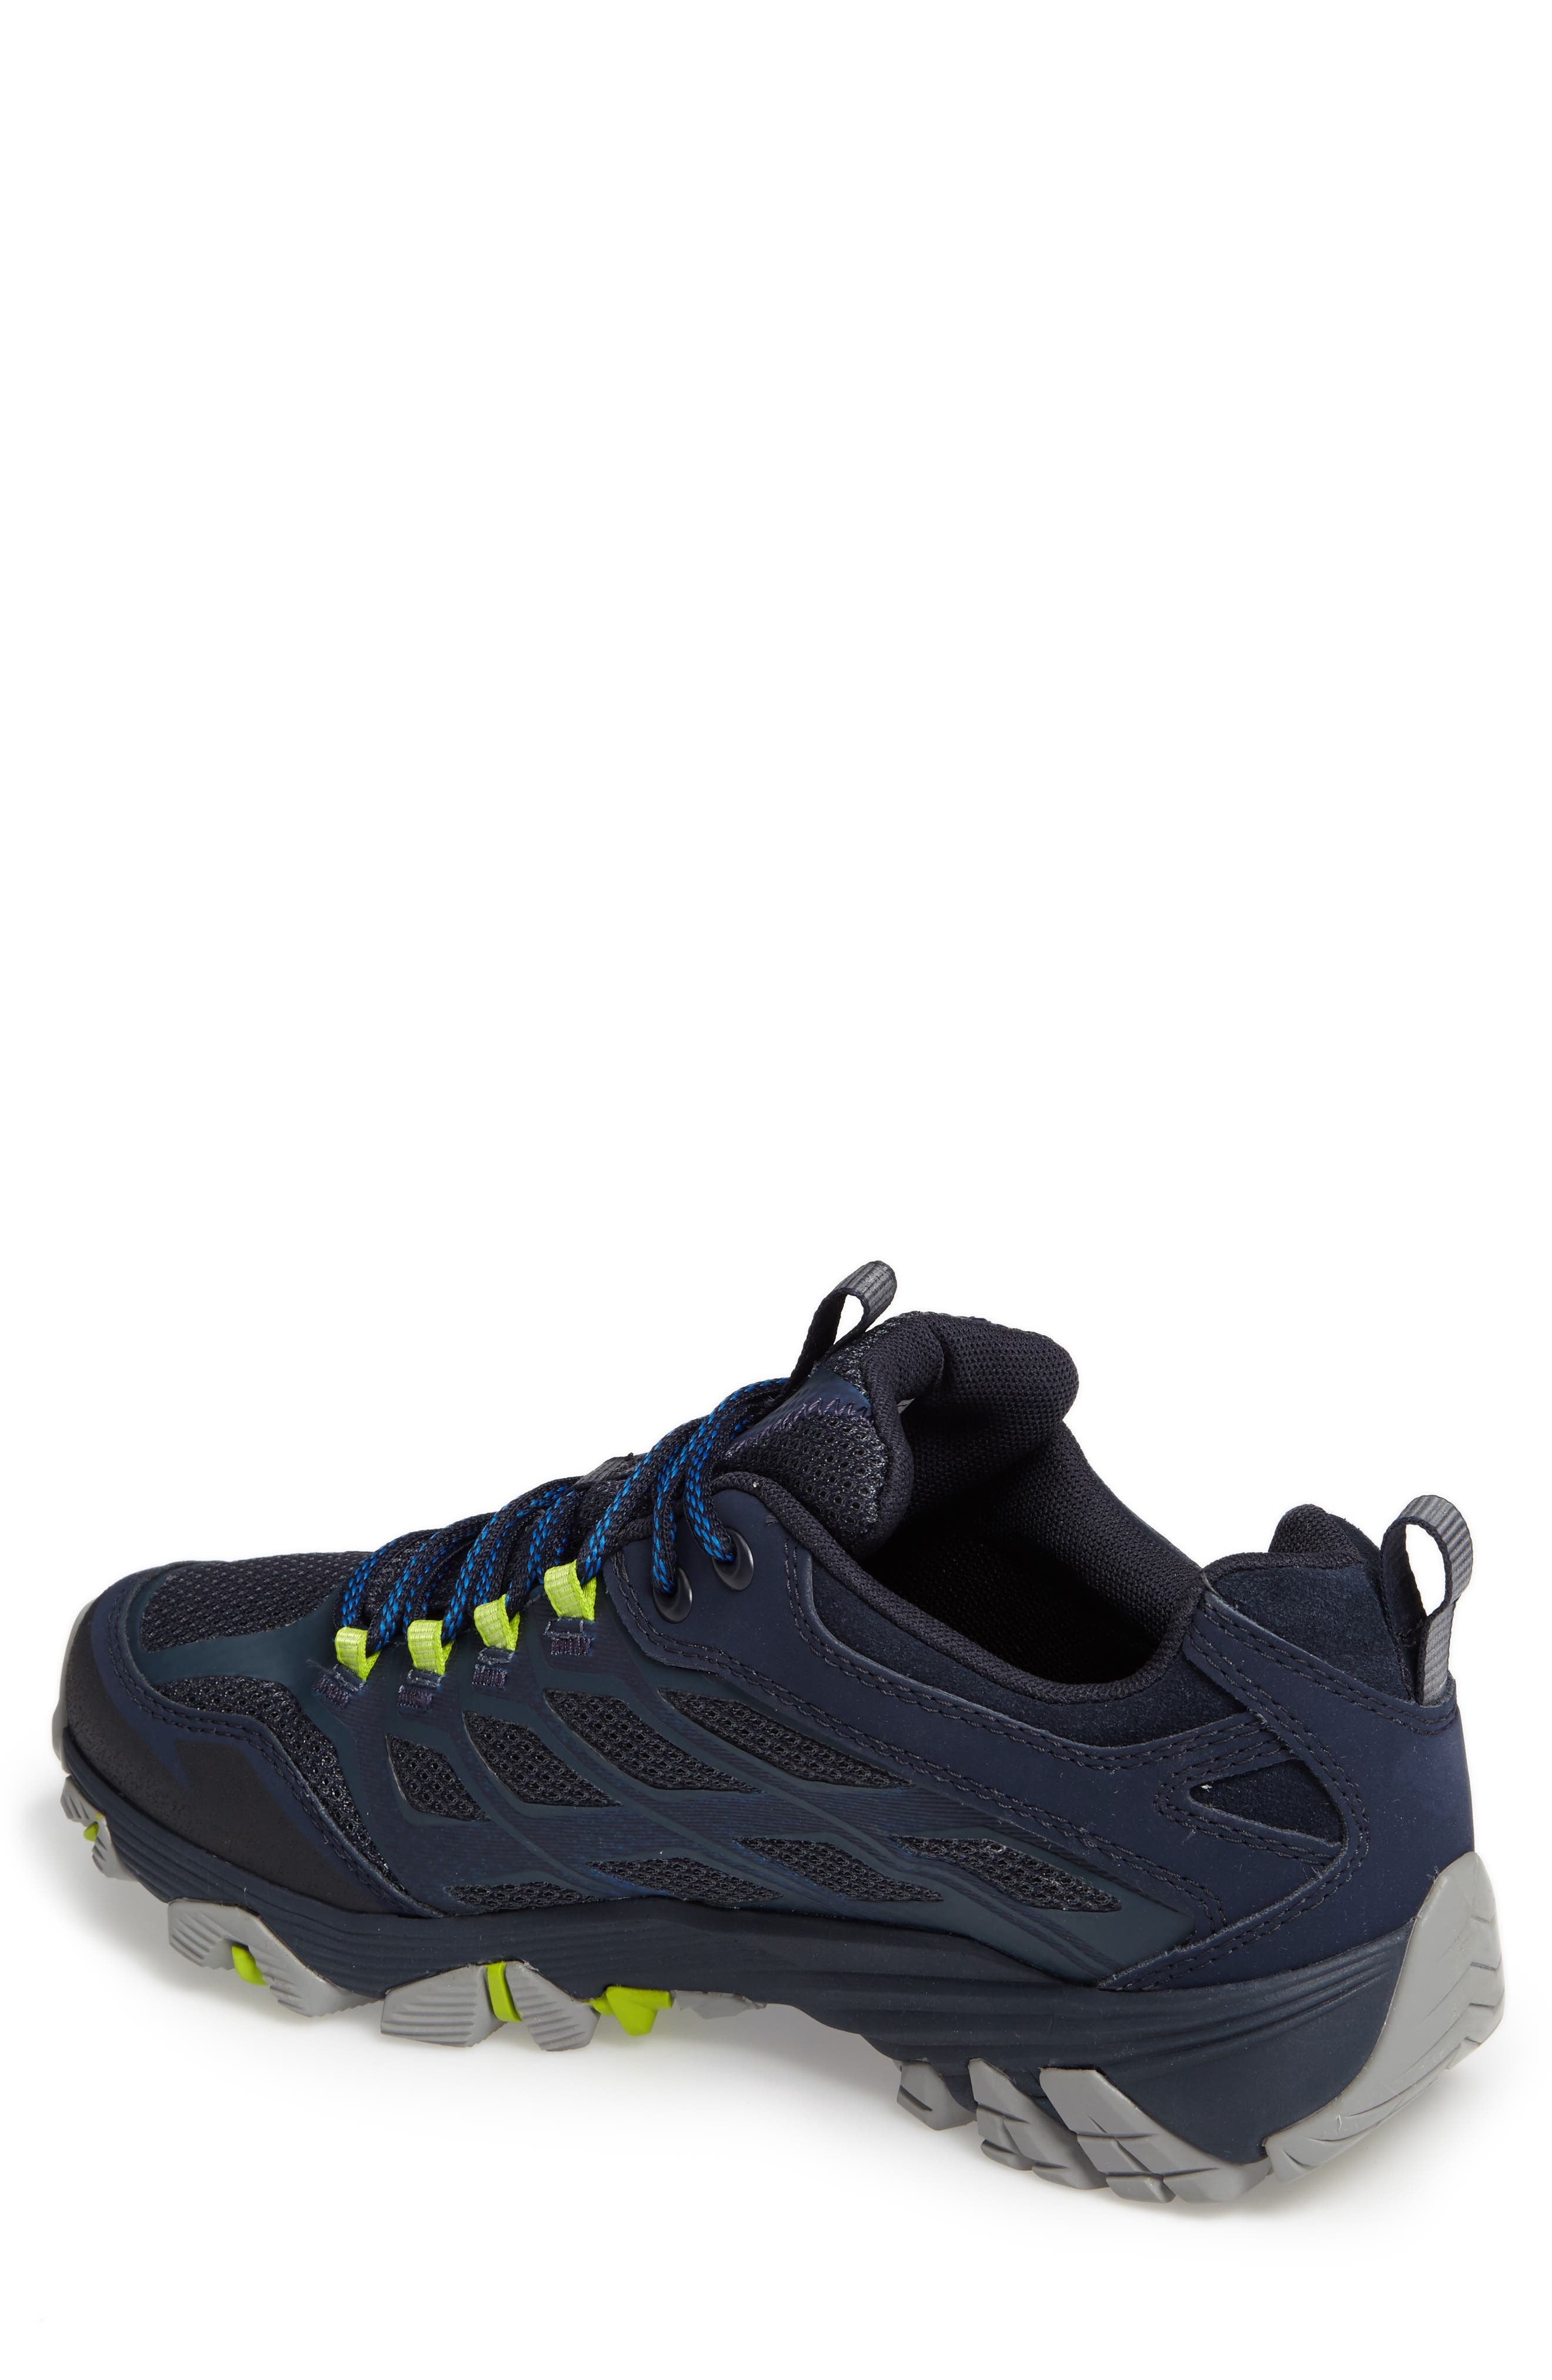 Moab FST Waterproof Hiking Shoe,                             Alternate thumbnail 2, color,                             Navy